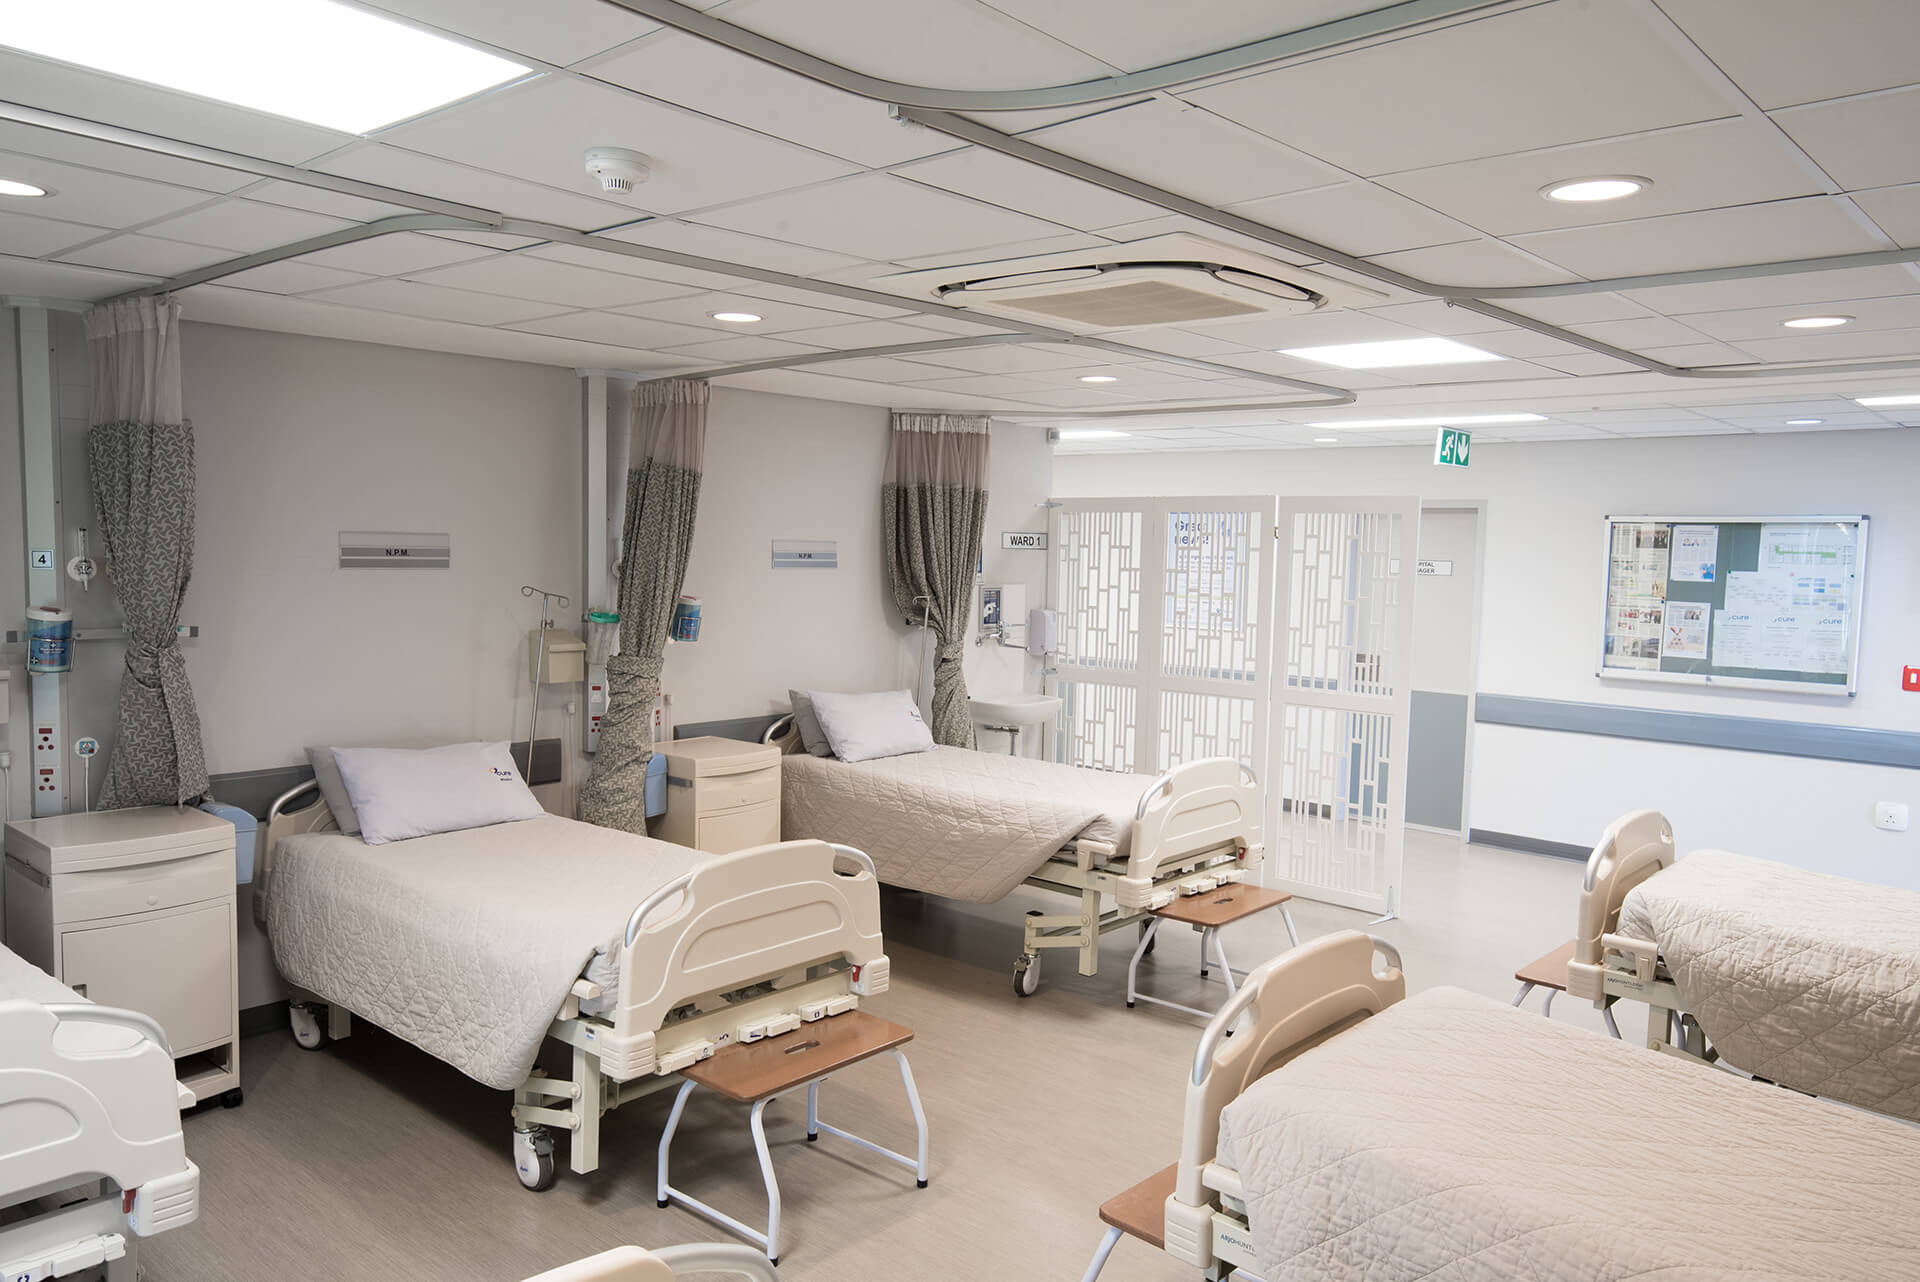 Importance of Day Hospital Midstream for Rehab